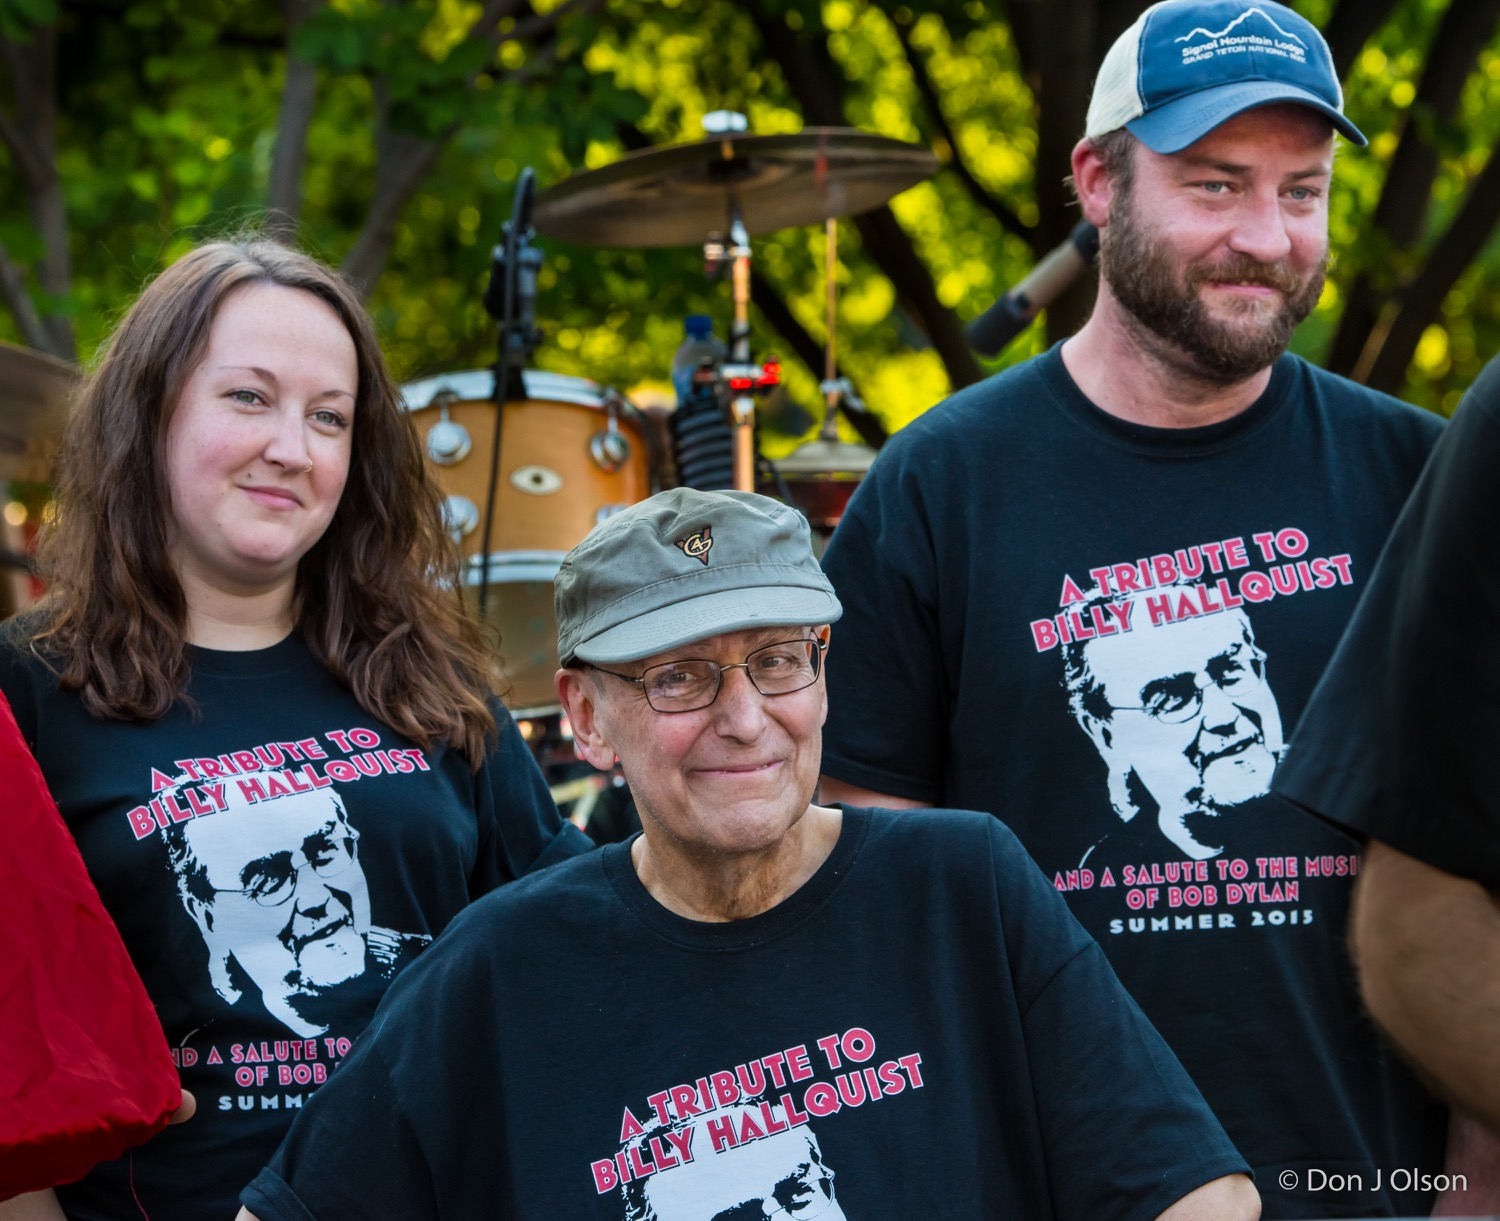 Megan Louise, Billy and BJ Hallquist / The Veterans' Memorial Wolfe Park Amphitheater / St. Louis Park, Minnesota / August 1st, 2015